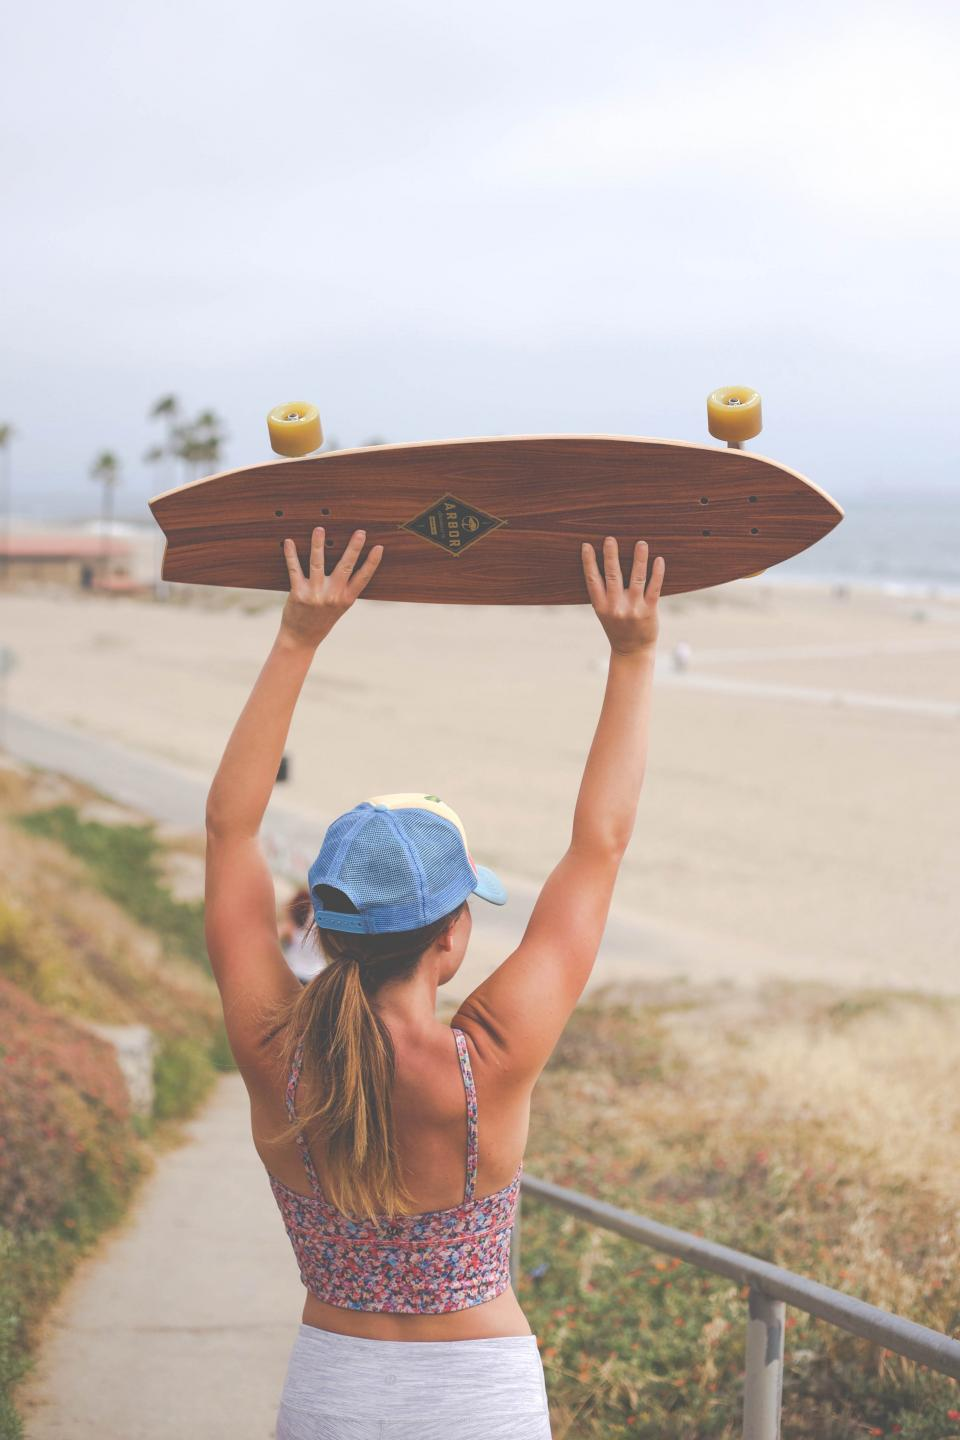 skateboard, people, girl, adventure, outdoor, landscape, travel